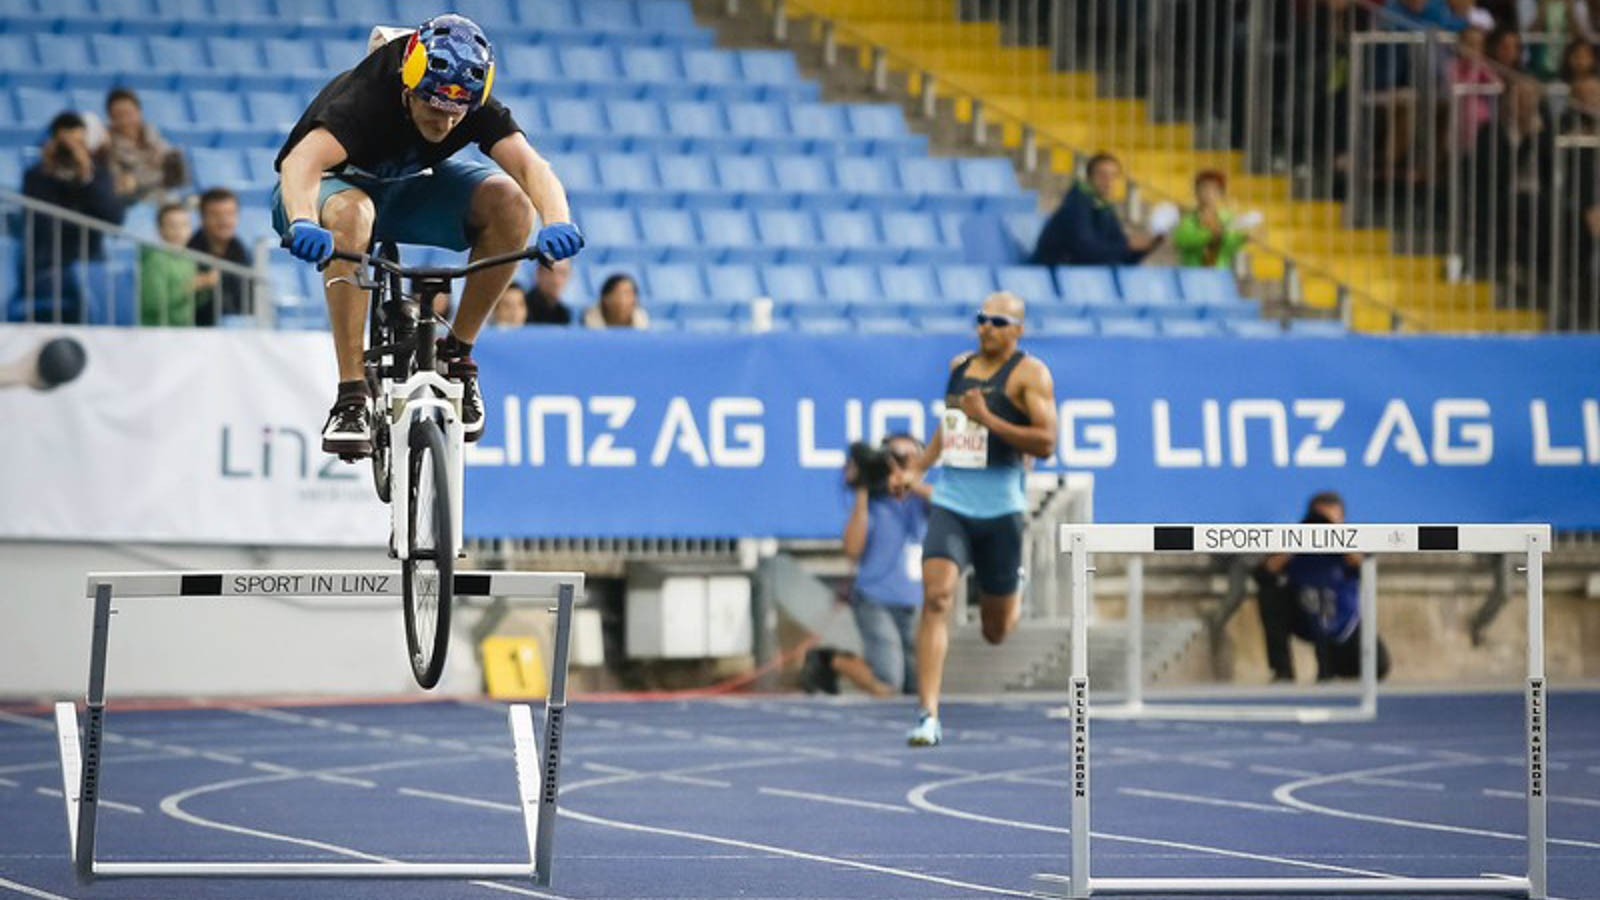 Austria's Thomas Oehler beat an Olympic gold medallist at hurdling… using his bike